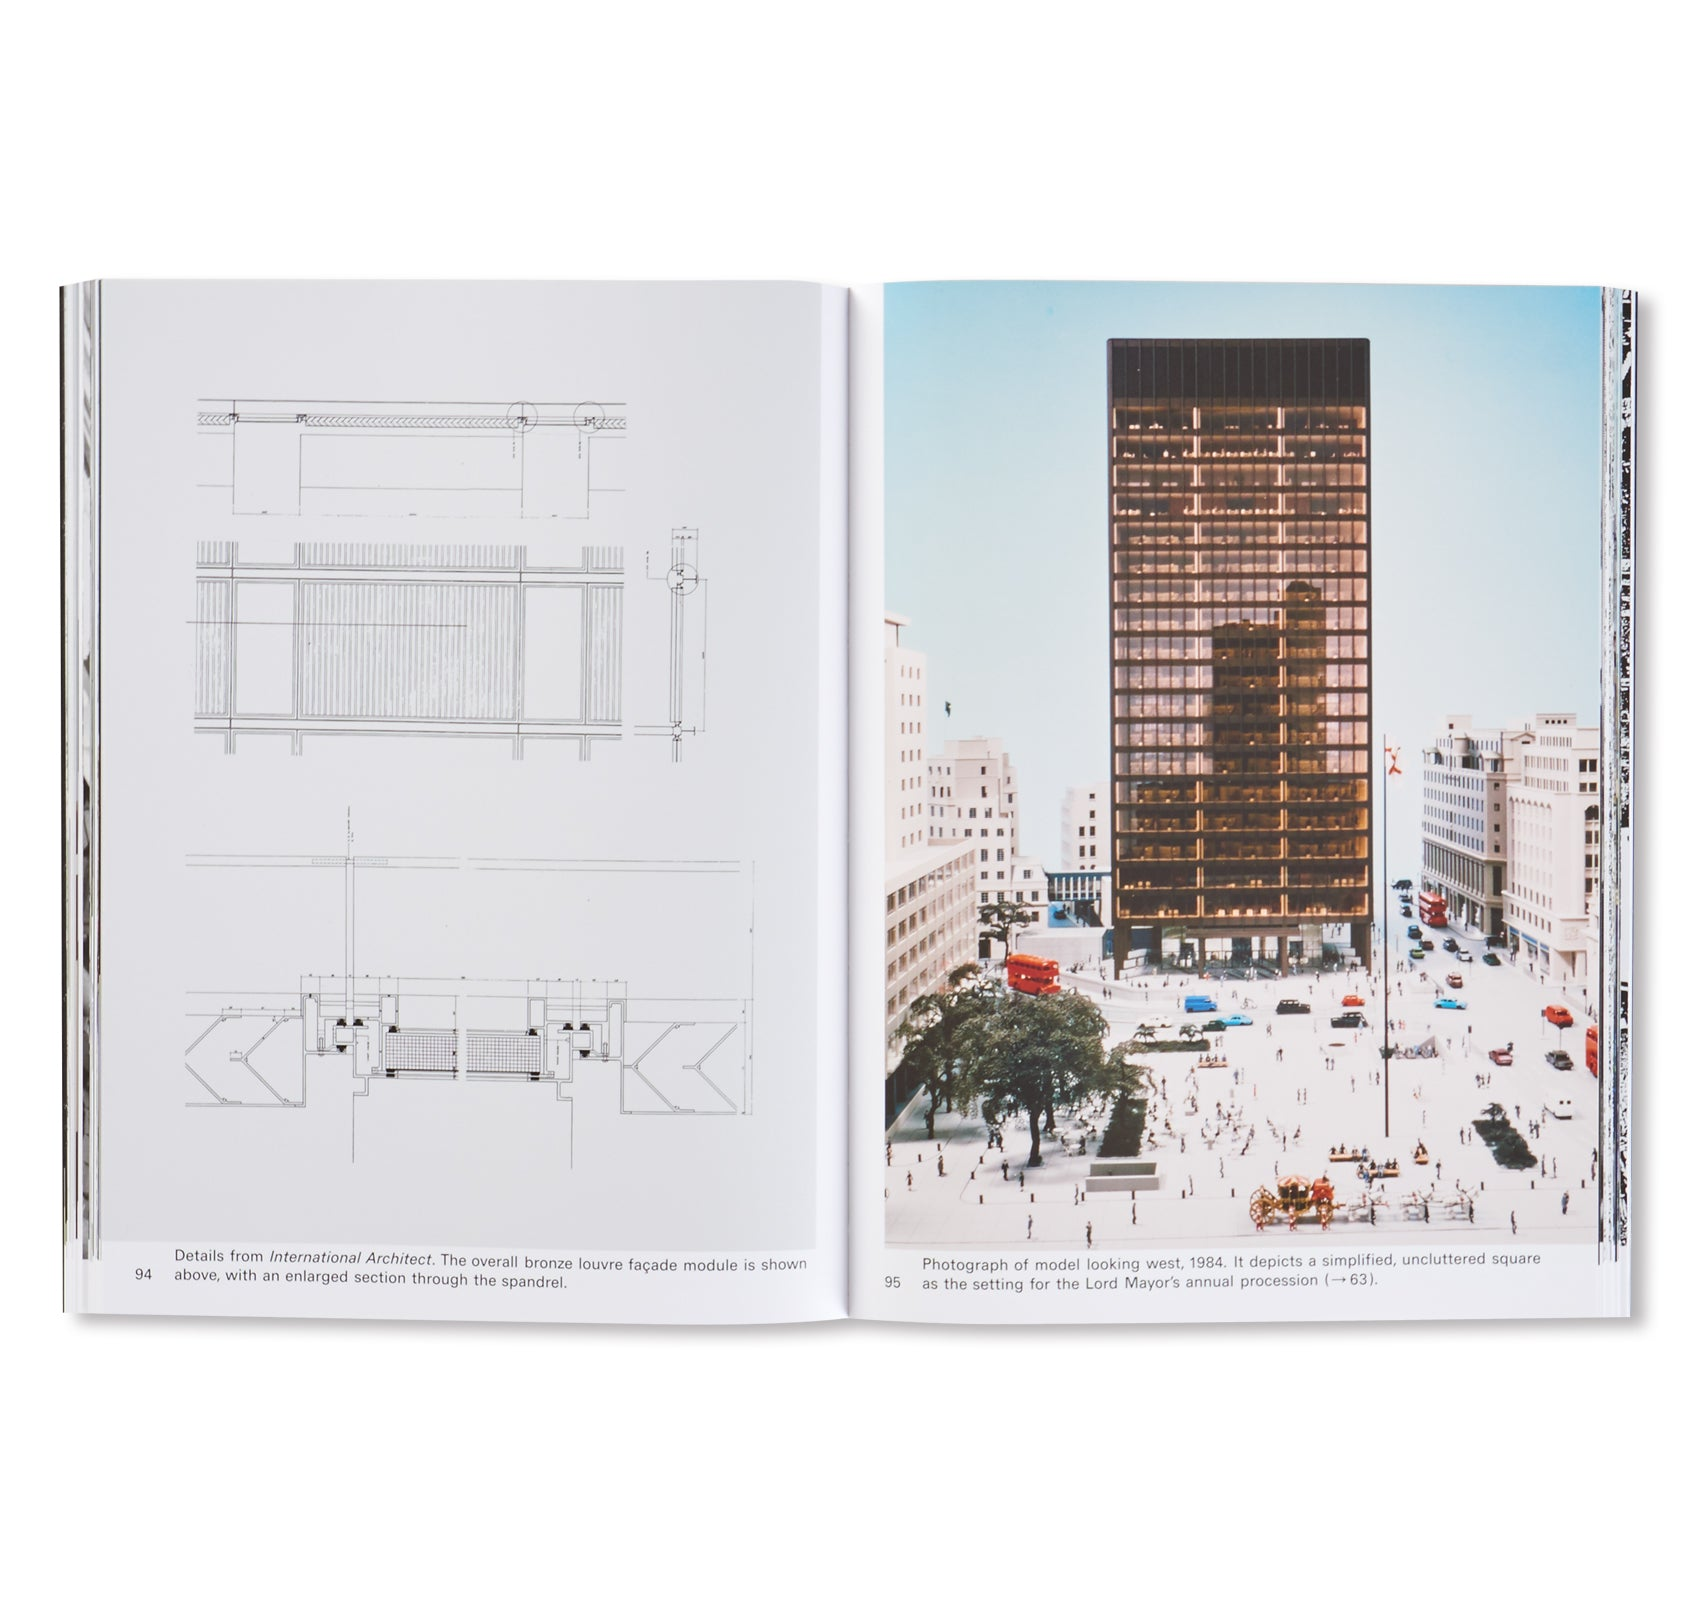 MIES IN LONDON by Mies van der Rohe [HARDCOVER]